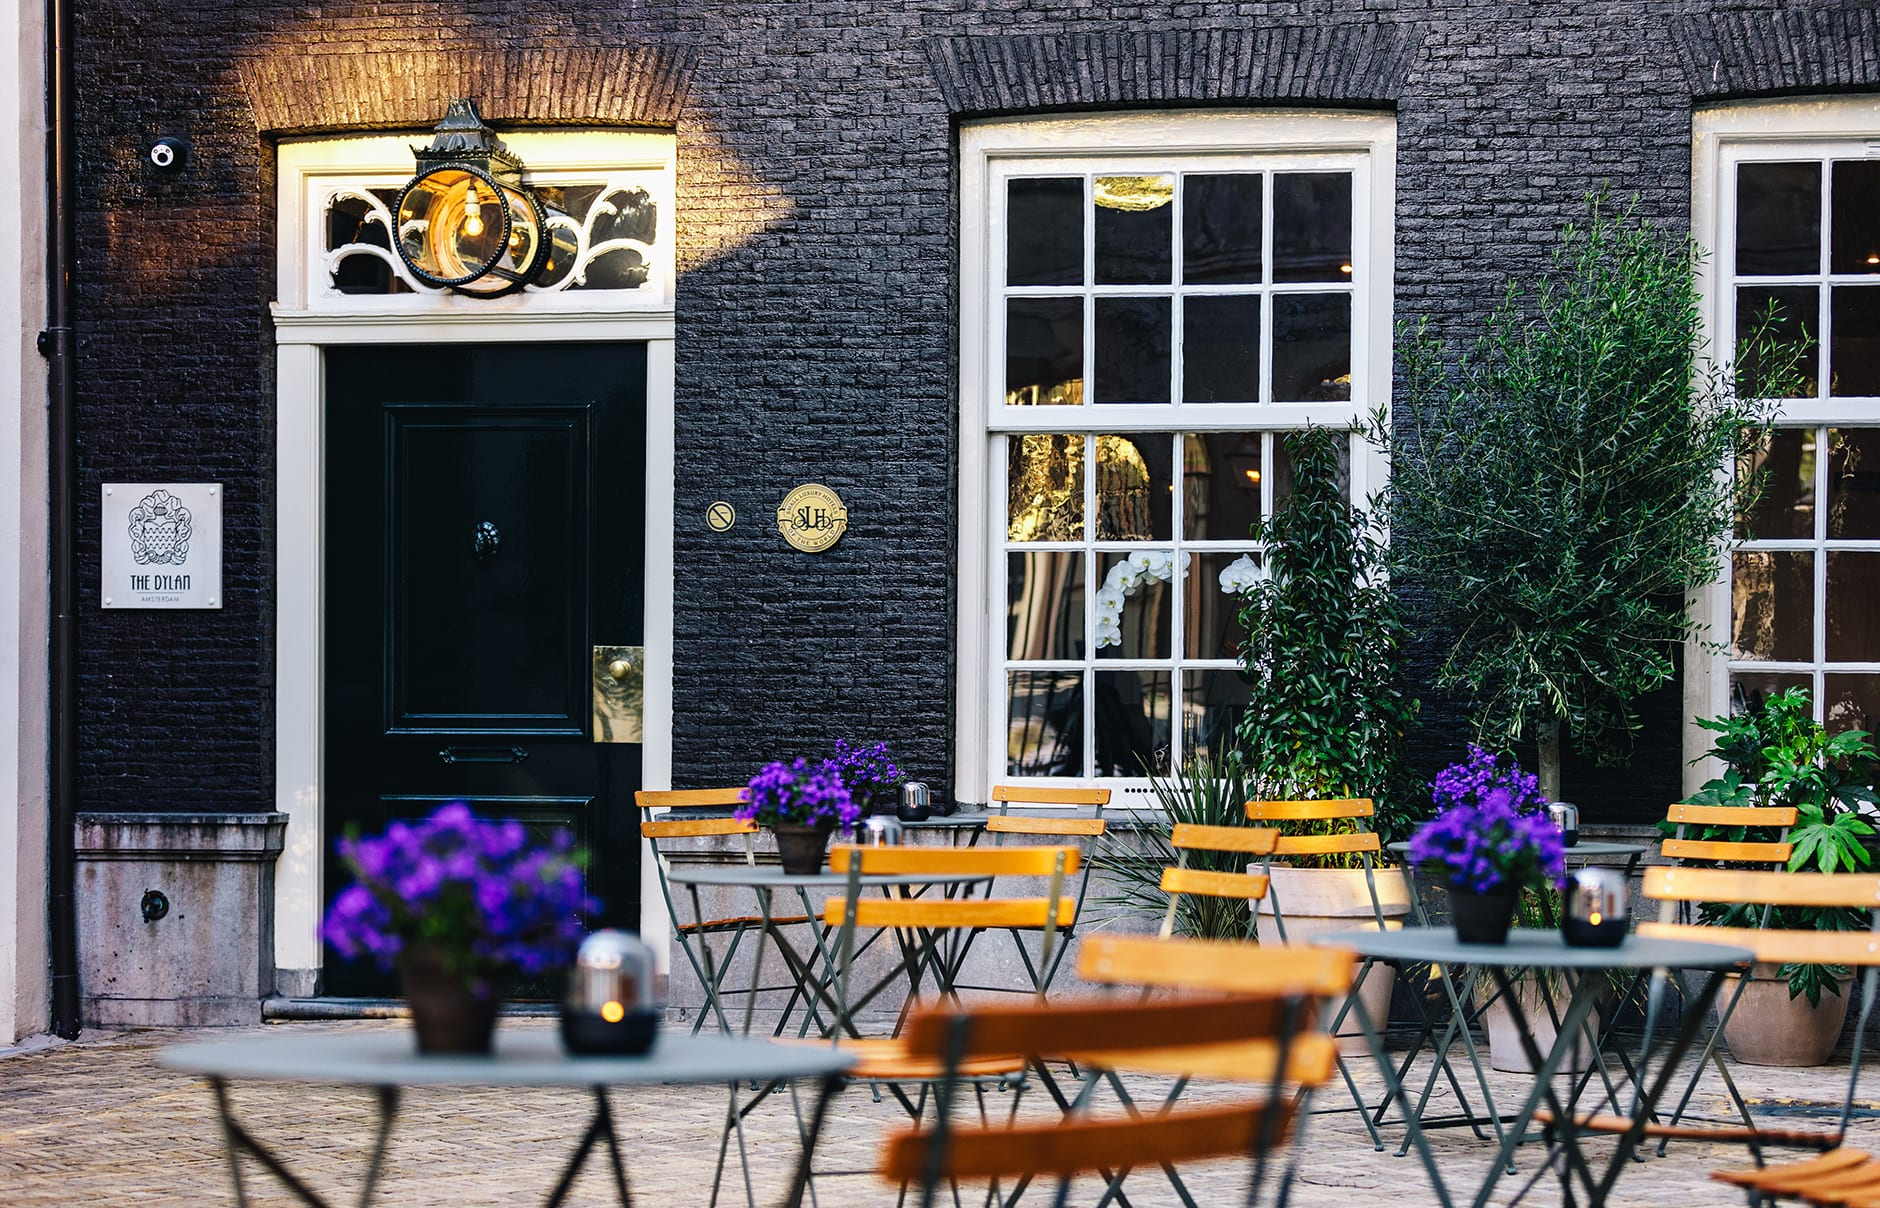 The Dylan, Amsterdam, Netherlands. Hotel Review by TravelPlusStyle. Photo © The Dylan Amsterdam